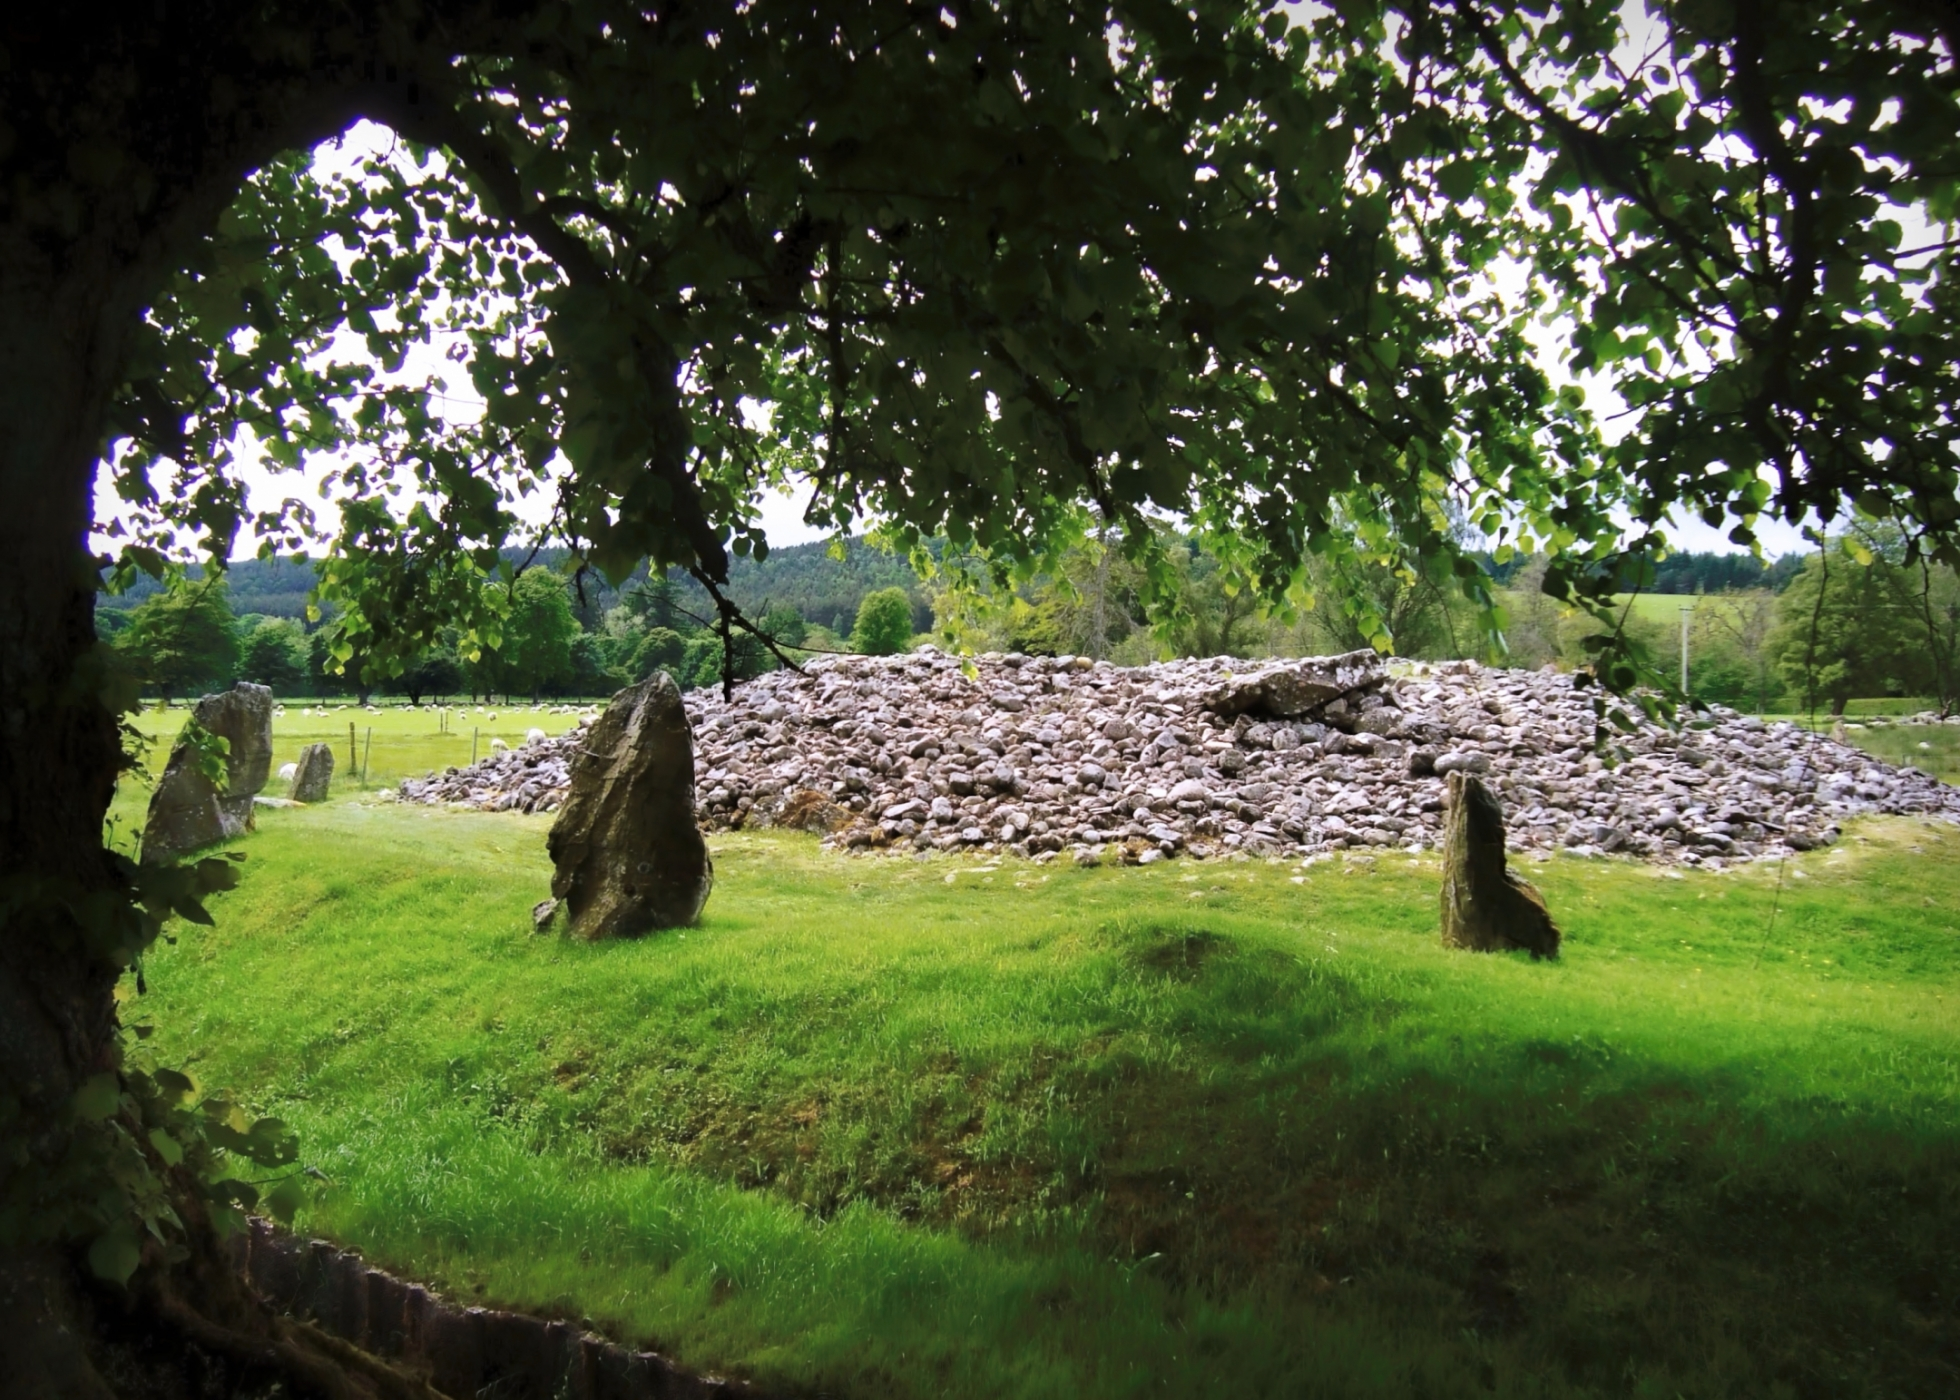 The prehistoric Clava Cairns burial chambers surrounded by standing stones and mature oak trees.